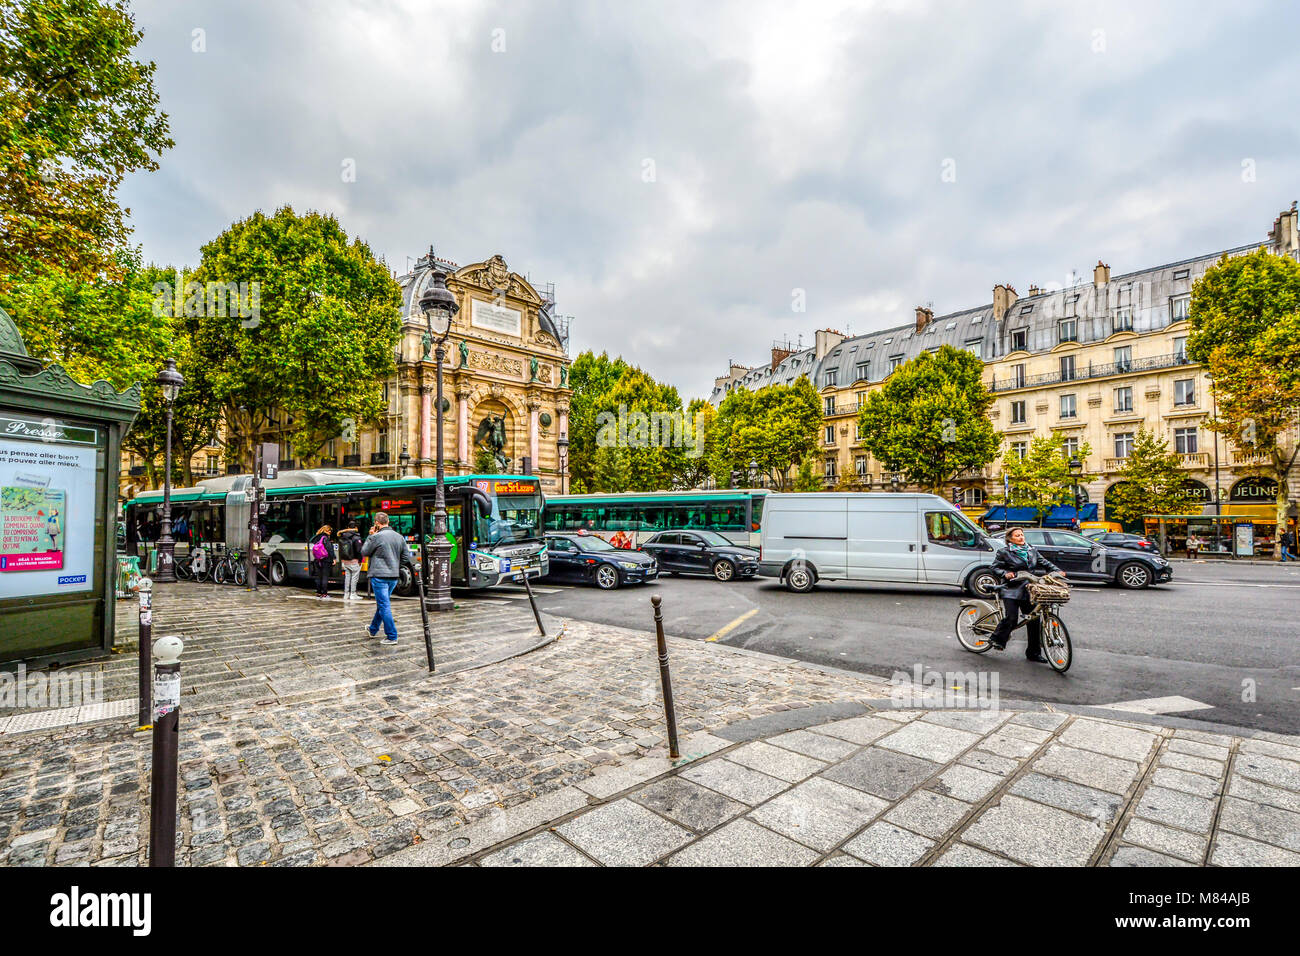 A cloudy, busy morning in Place Saint-Michel in the 5th arrondissement of Paris France with the Fontaine Saint-Michel - Stock Image